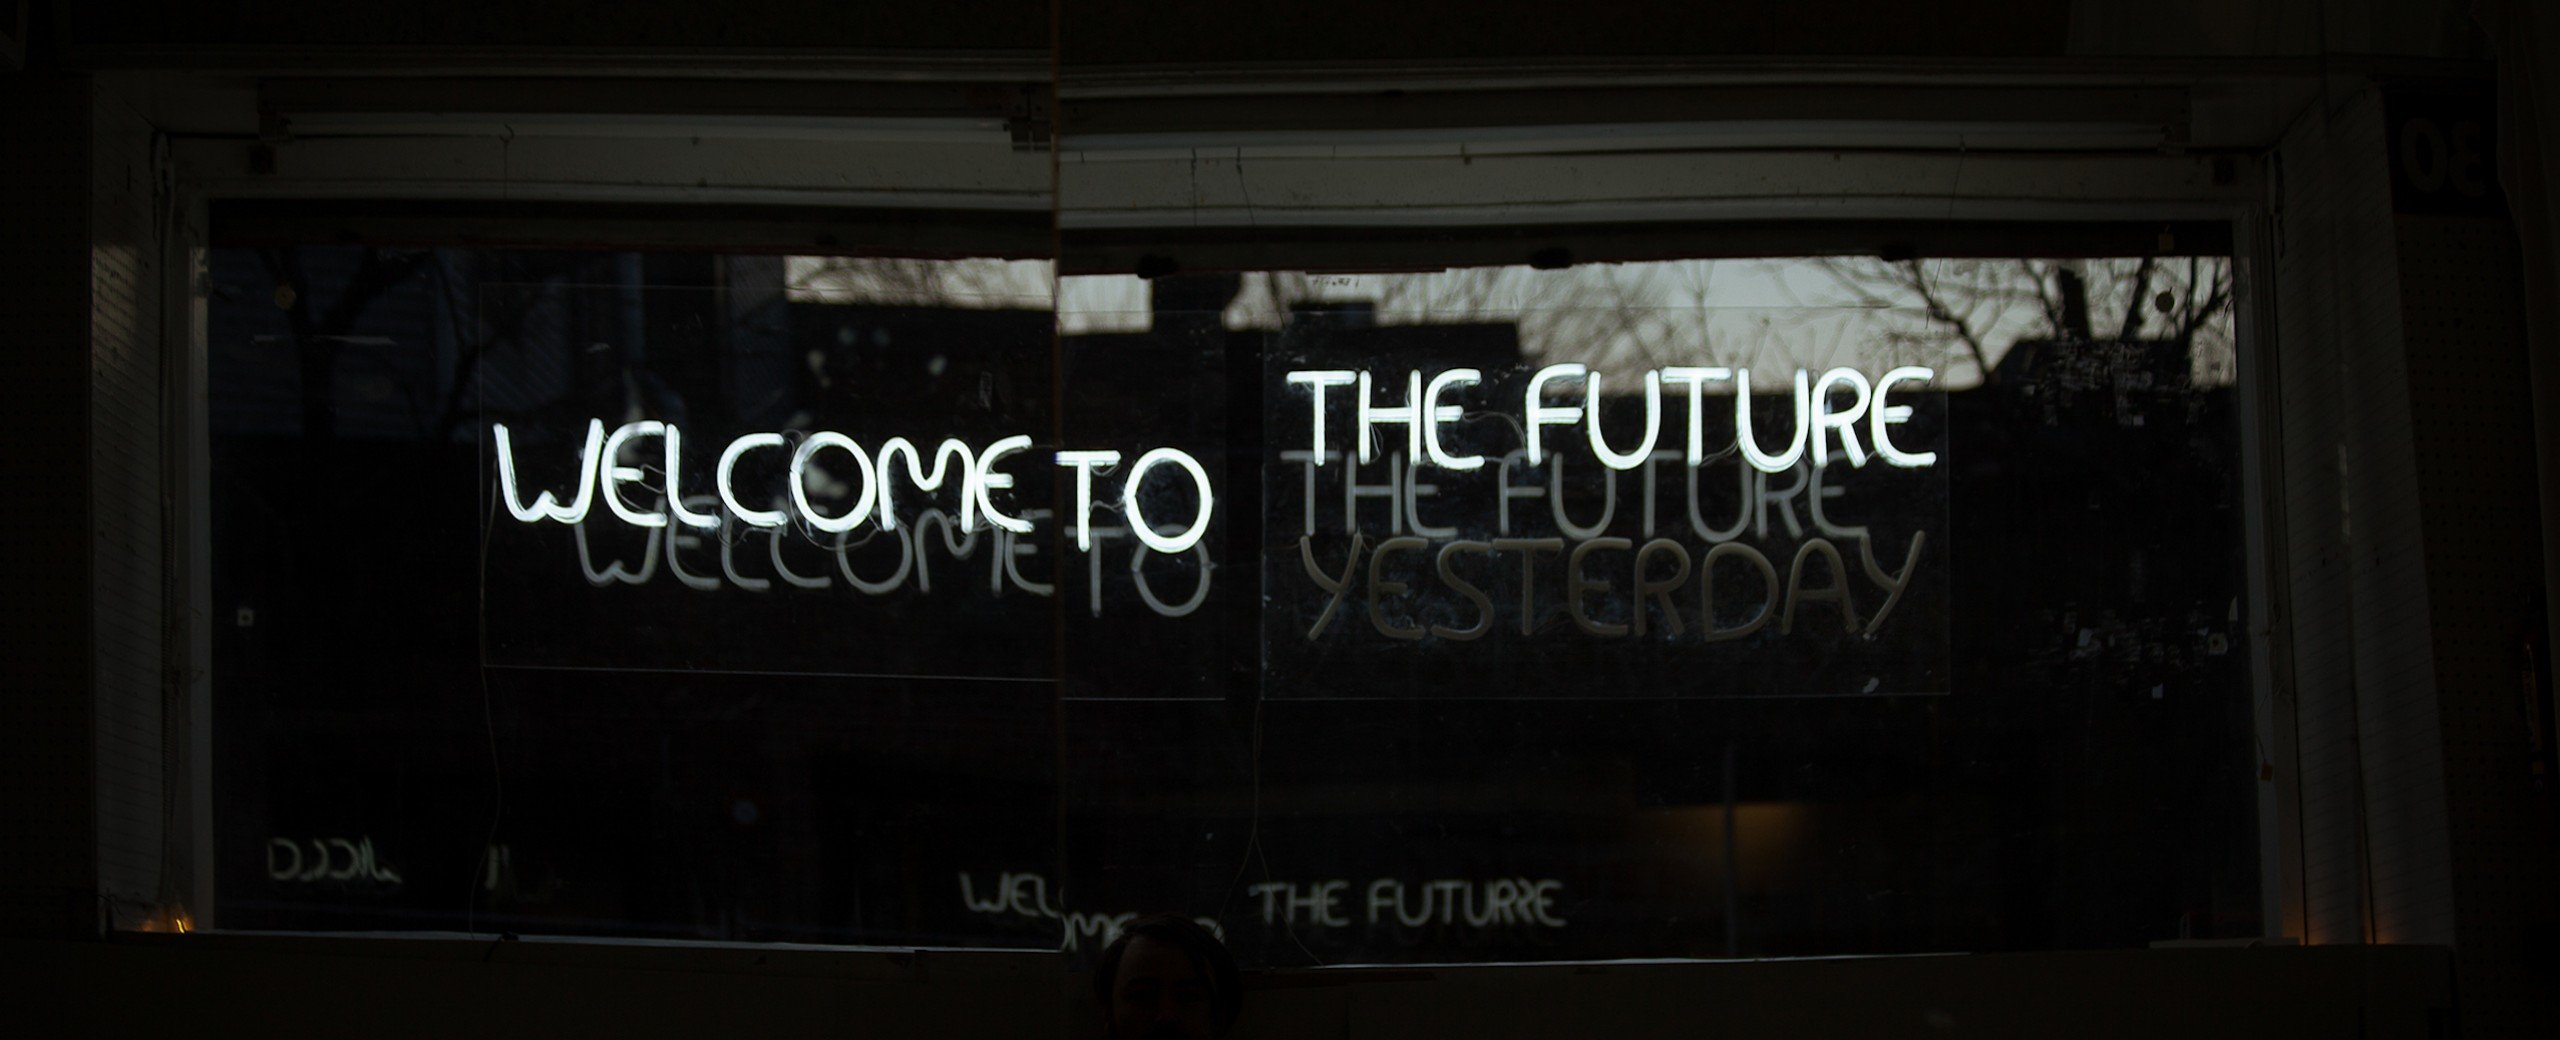 welcome to the future, il grido, luciano funetta, chiarelettere